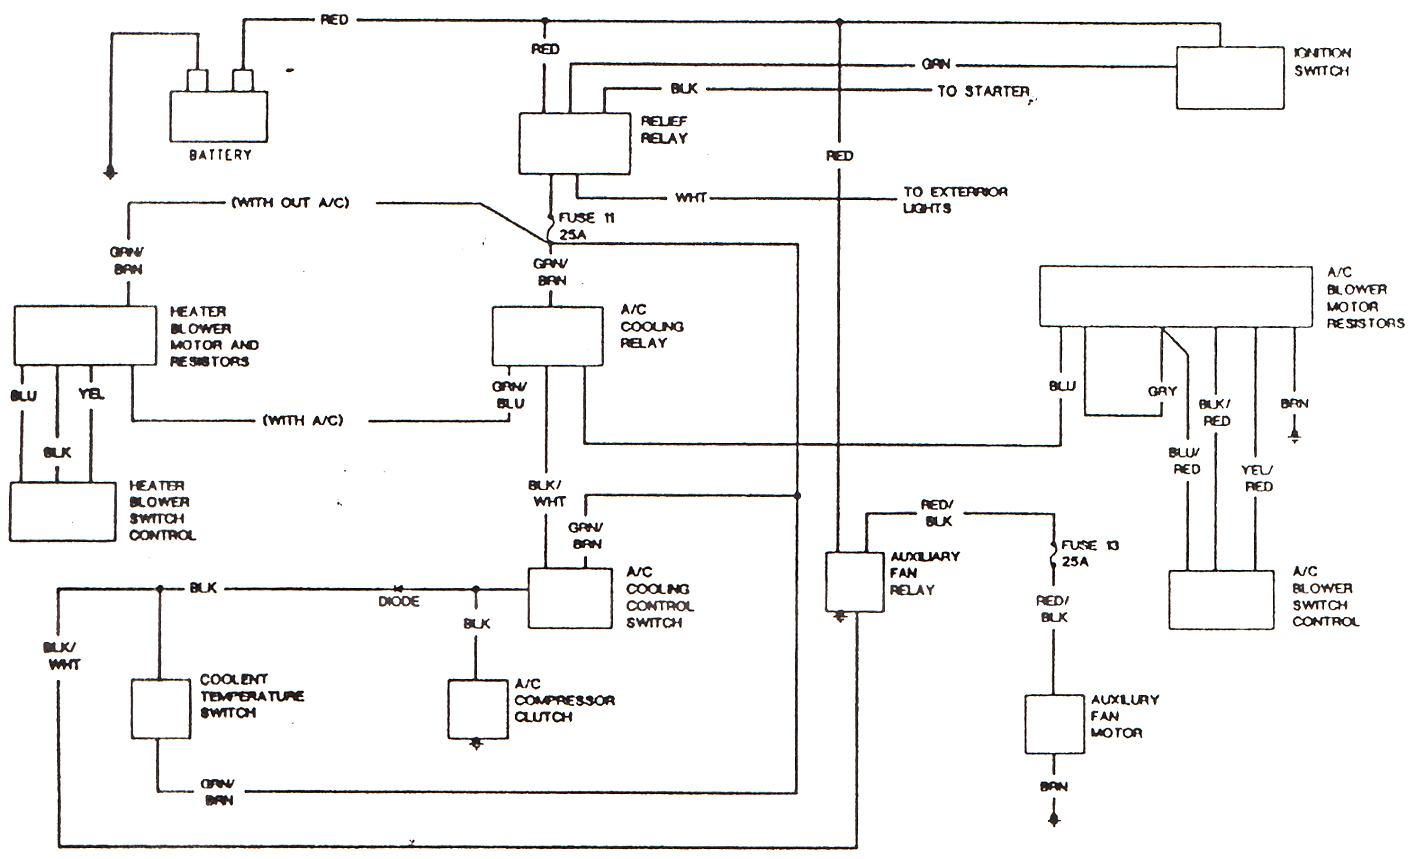 Car Air Conditioning Wiring Diagram in addition Lexus SC300 Wiring Diagram also 05 Chevy Silverado Reverse Light Fuse also Battery Charger Circuit Diagram besides Radio Shack Volume Potentiometer Wiring. on lexus wiring schematics